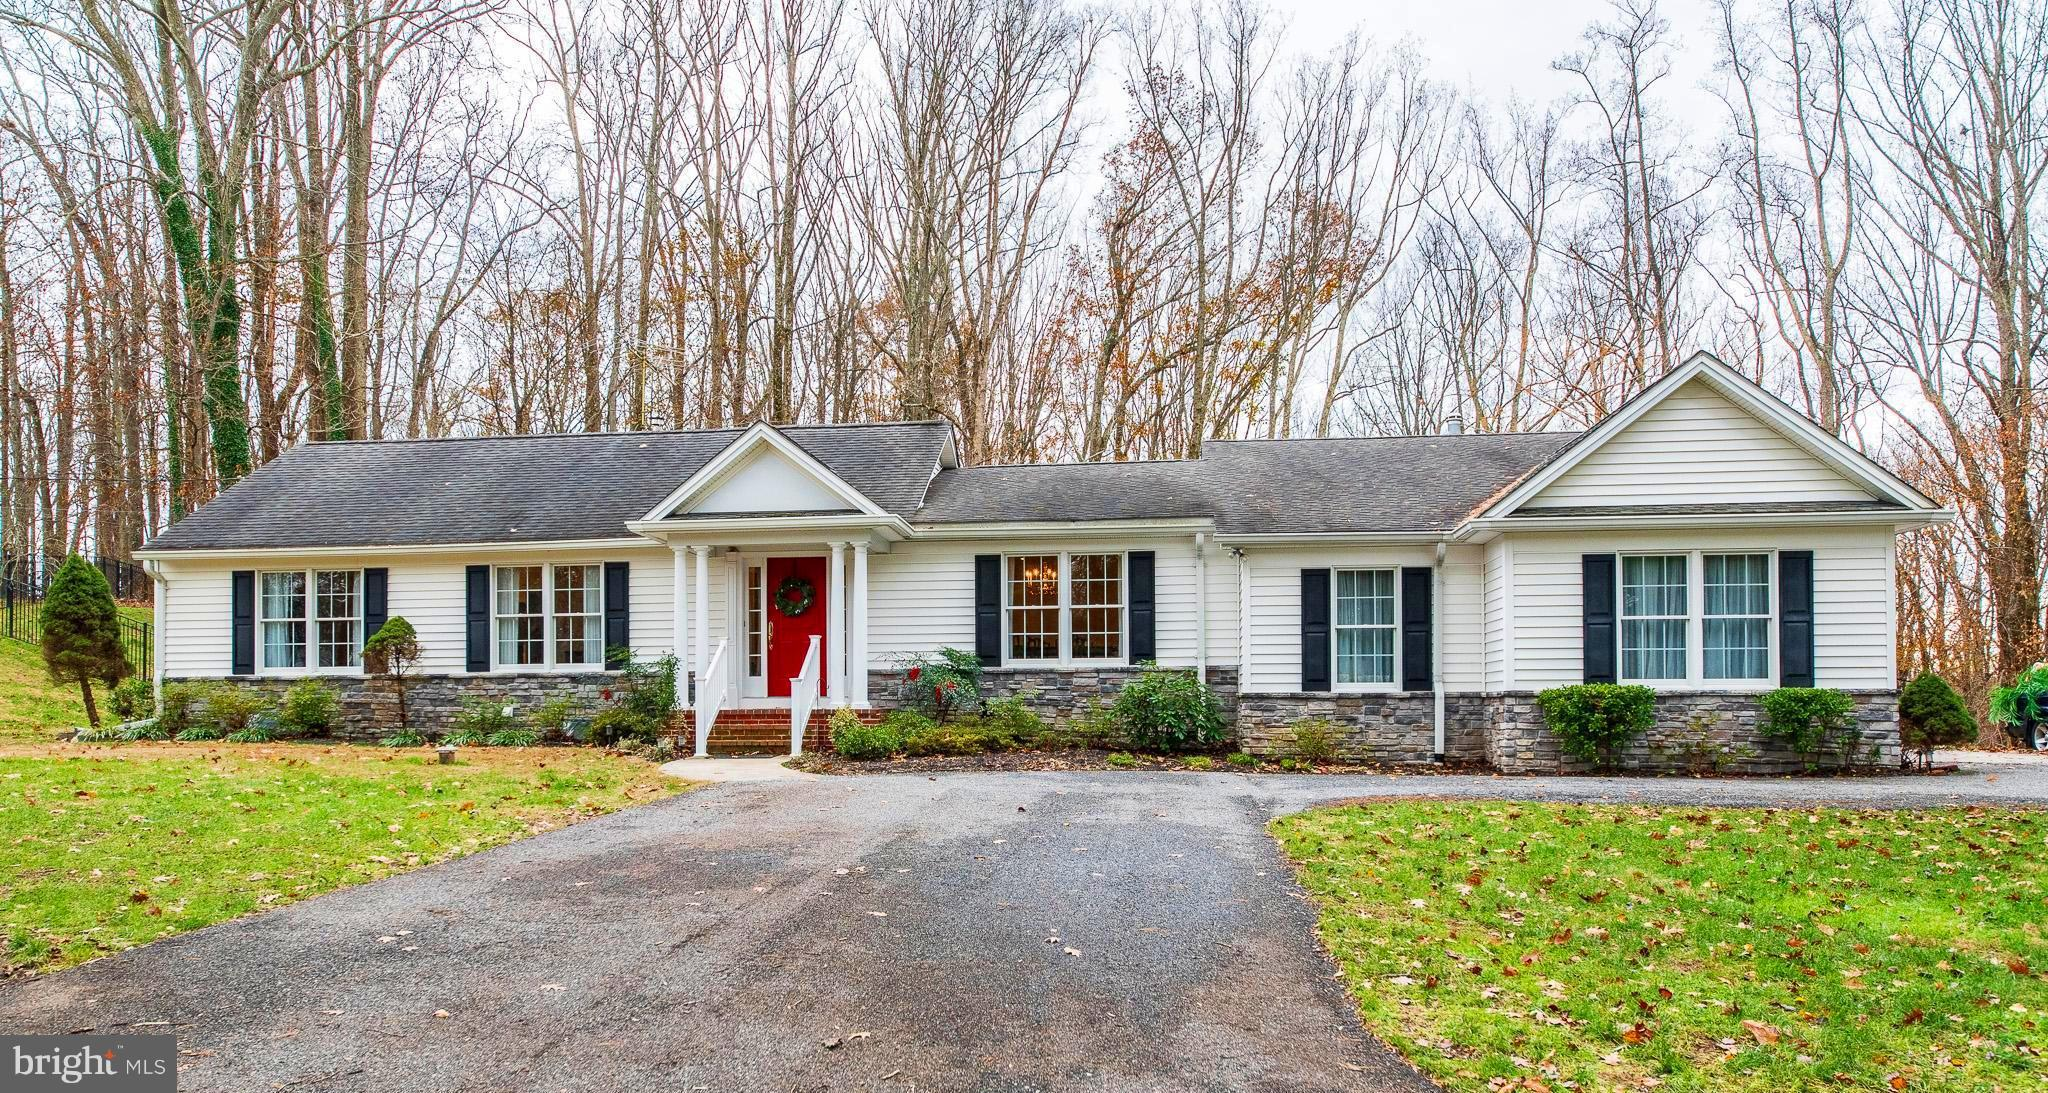 831 WALTERS LANE, SPARKS, MD 21152